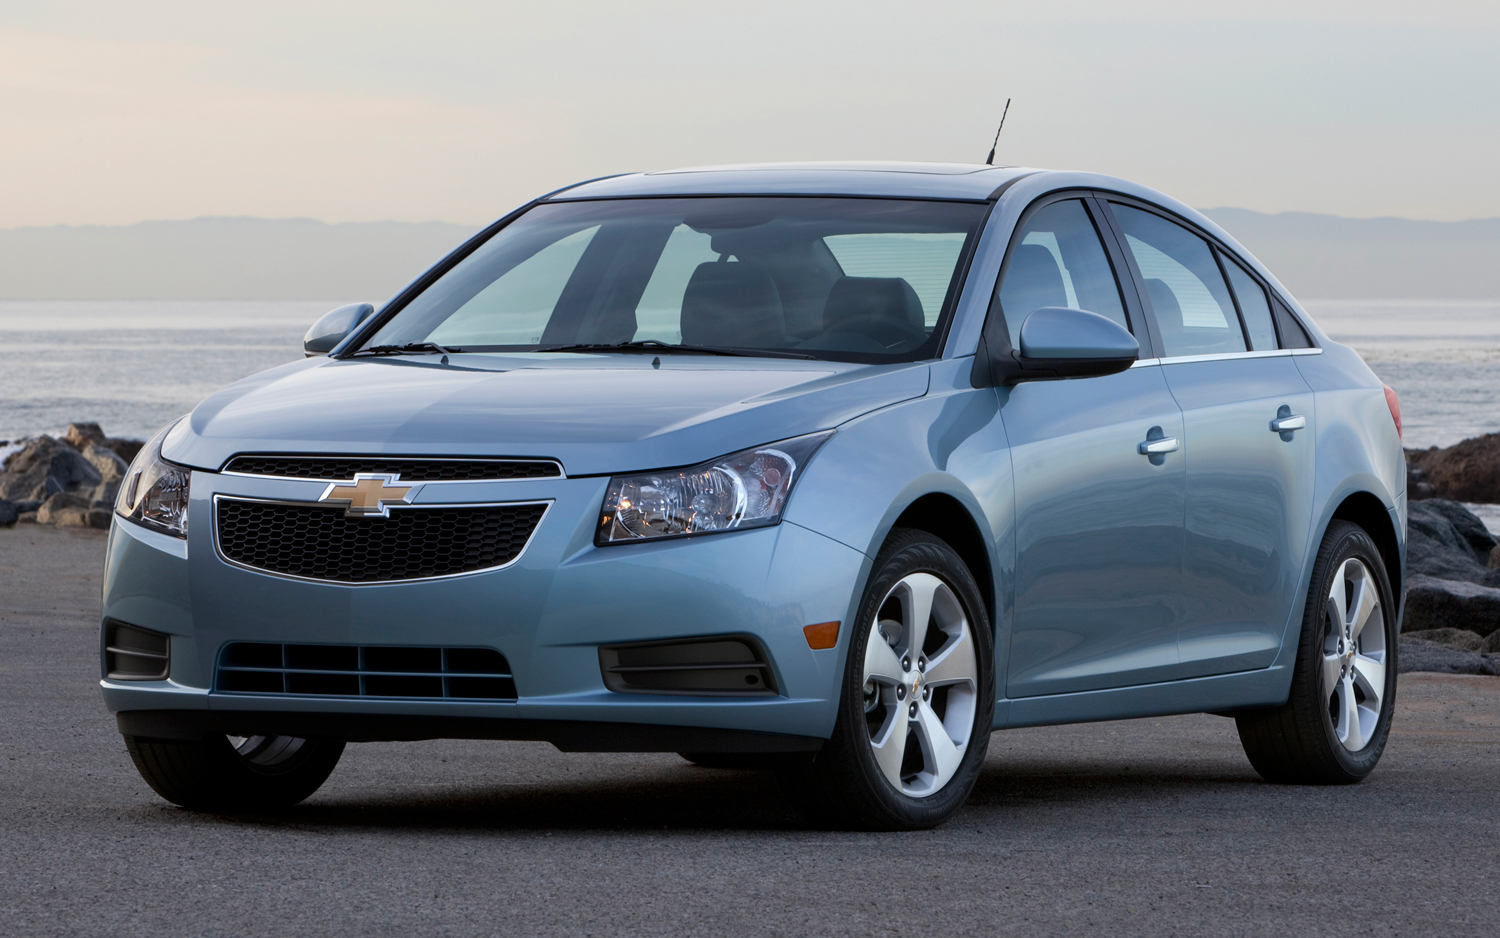 We Hear: 2013 Chevrolet Cruze Diesel Gets 50 MPG, Has Automatic Transmission